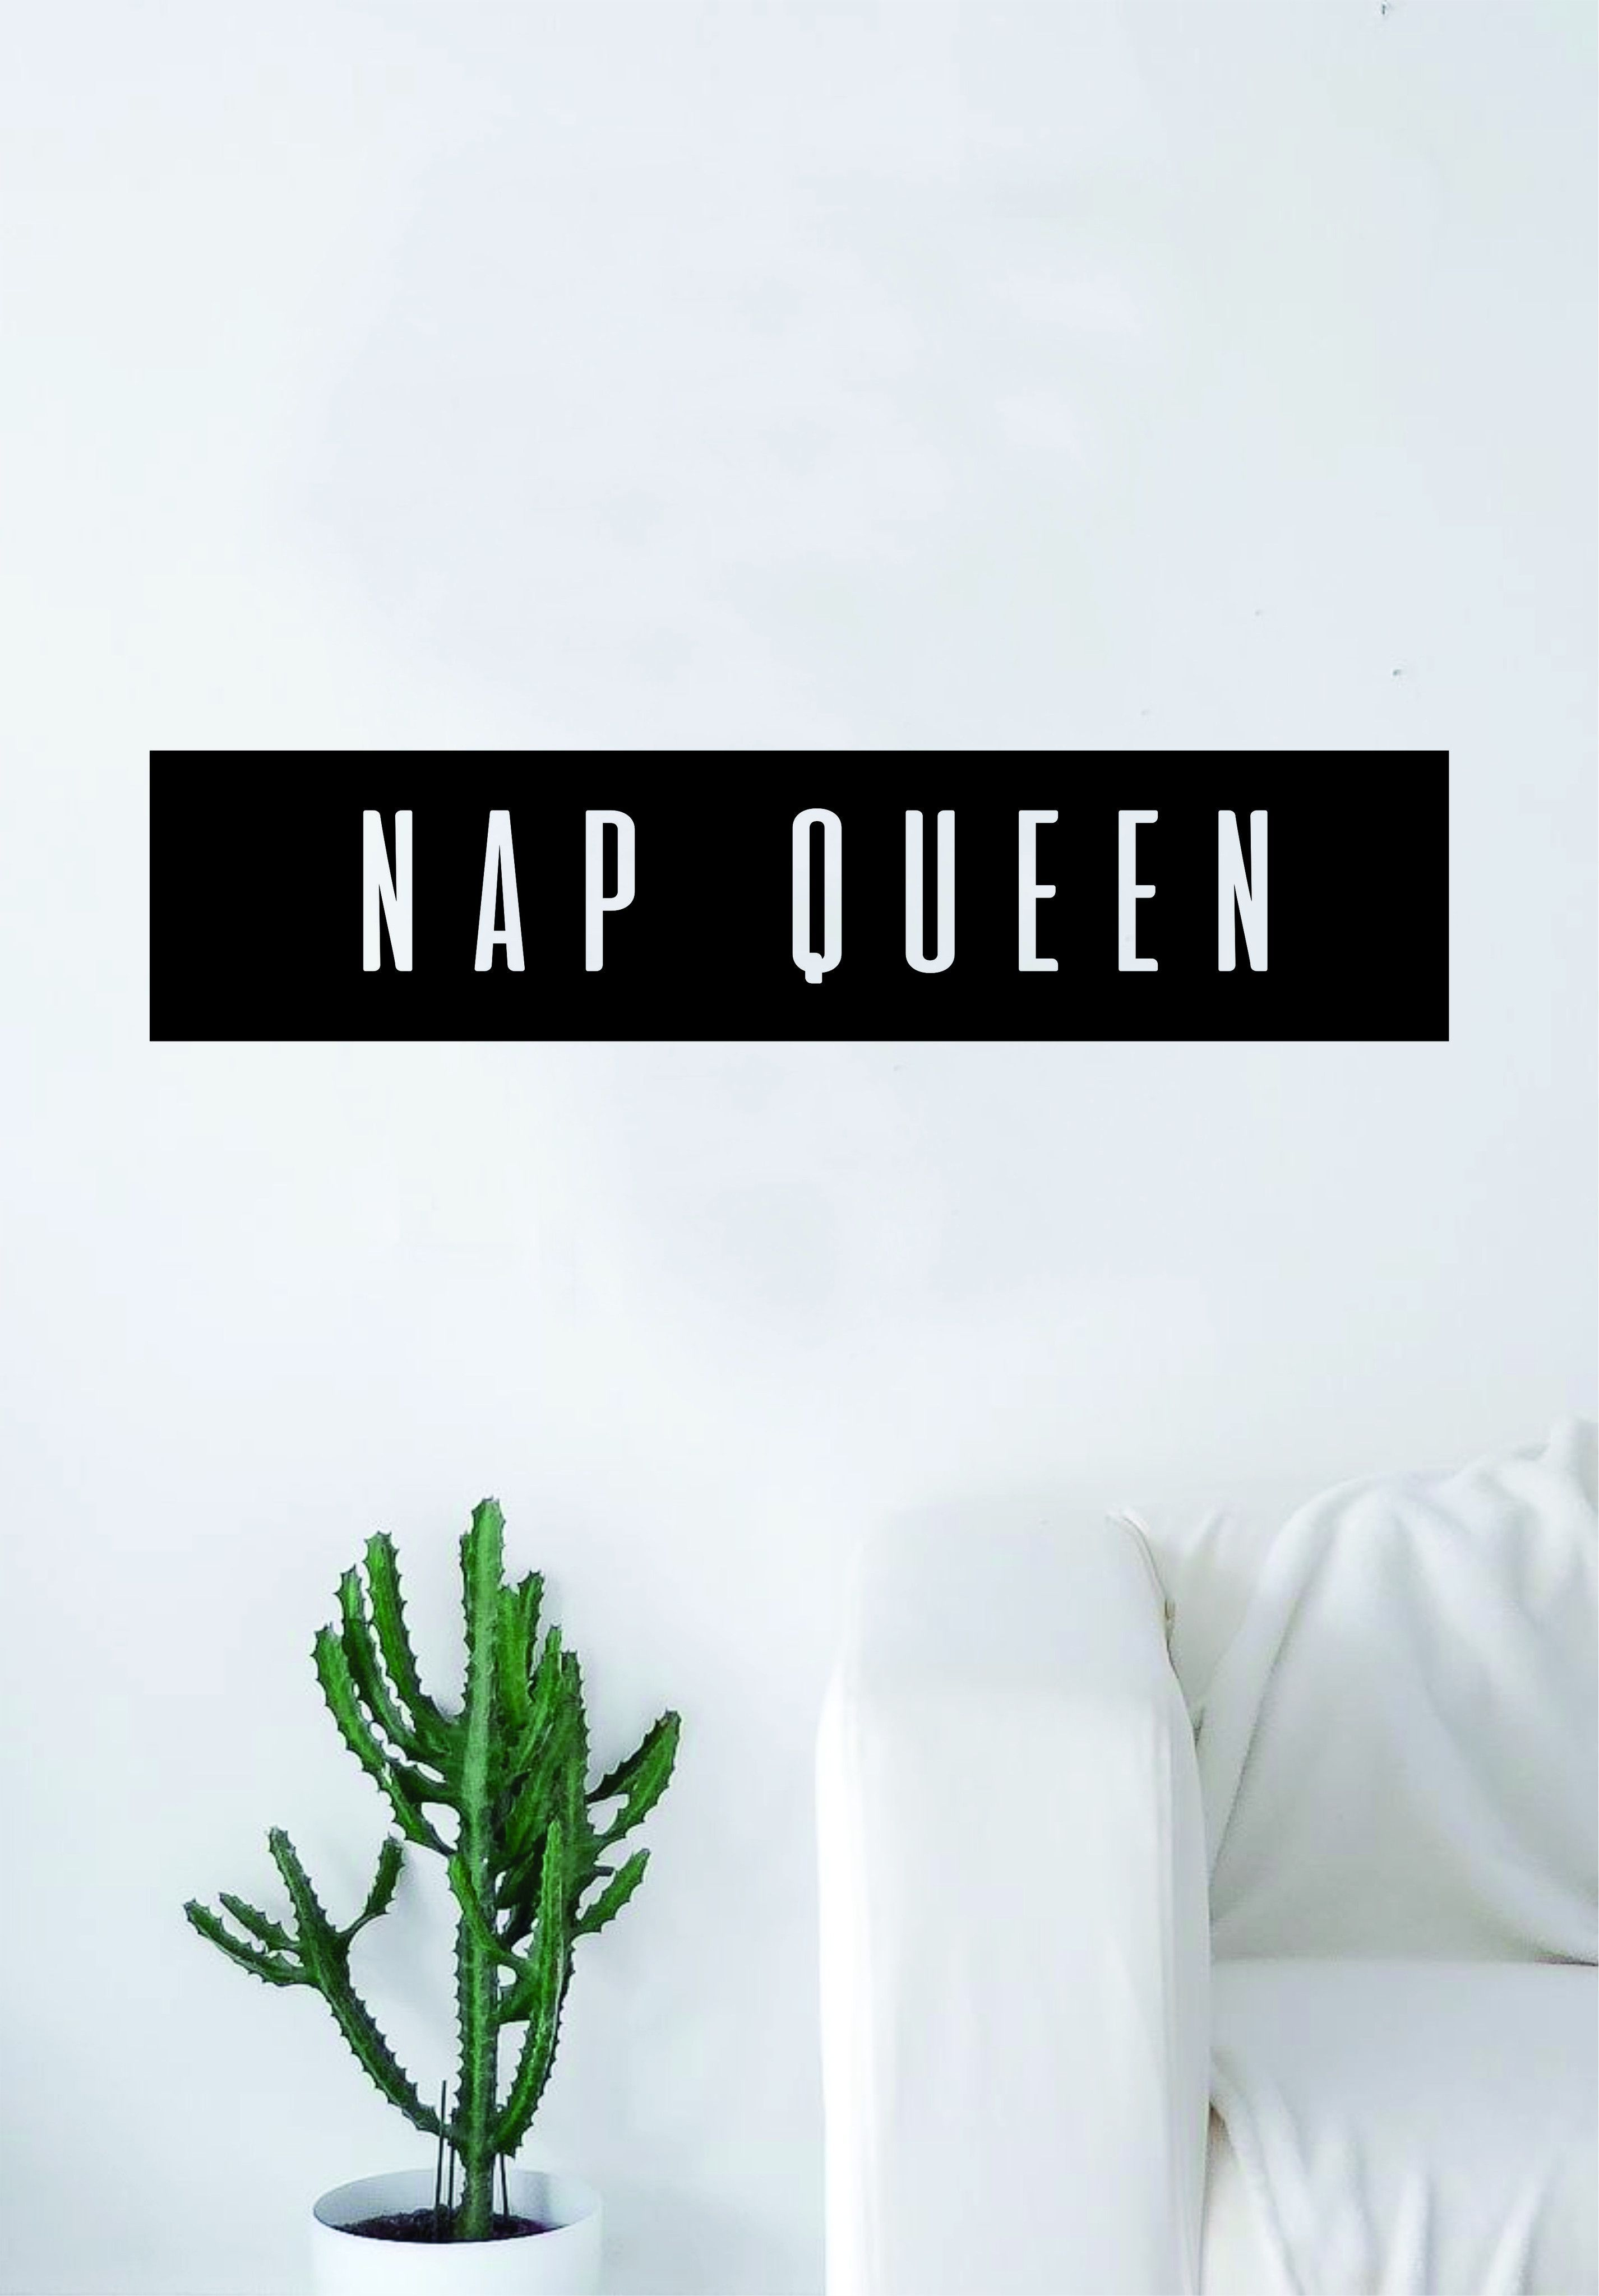 Nap queen rectangle box quote wall decal sticker bedroom living room